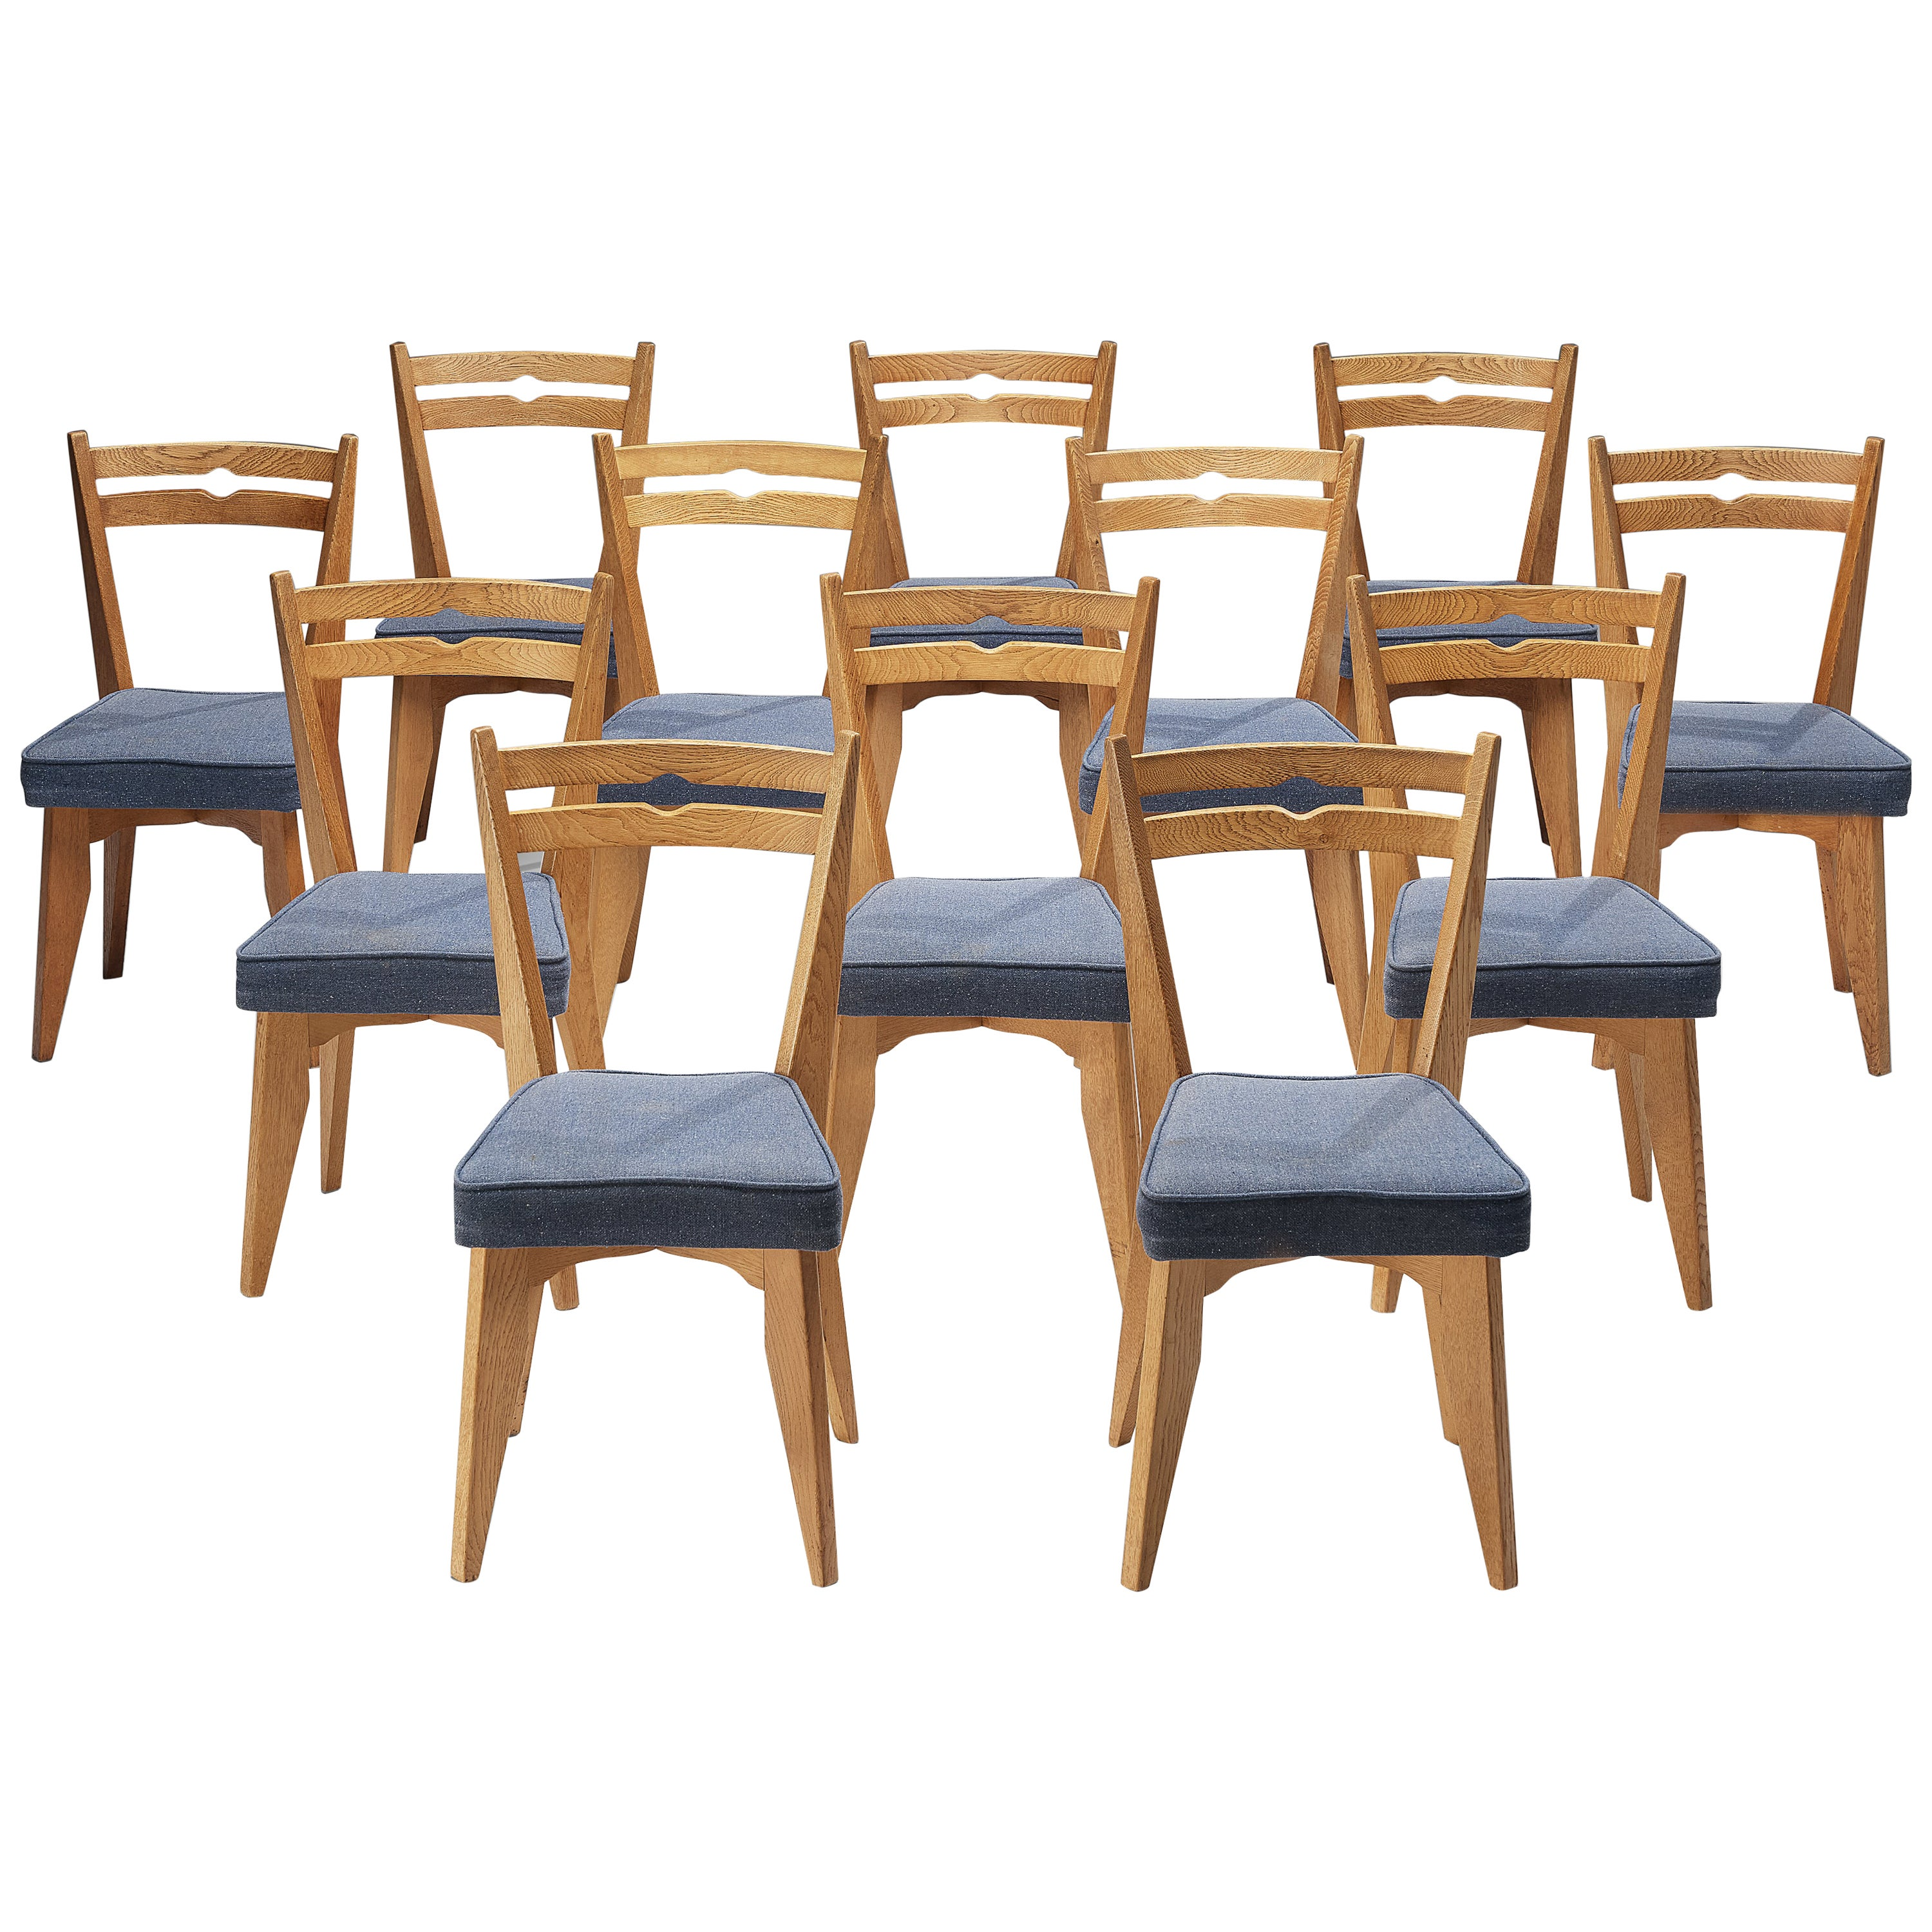 Guillerme et Chambron Set of 12 Dining Chairs in Oak